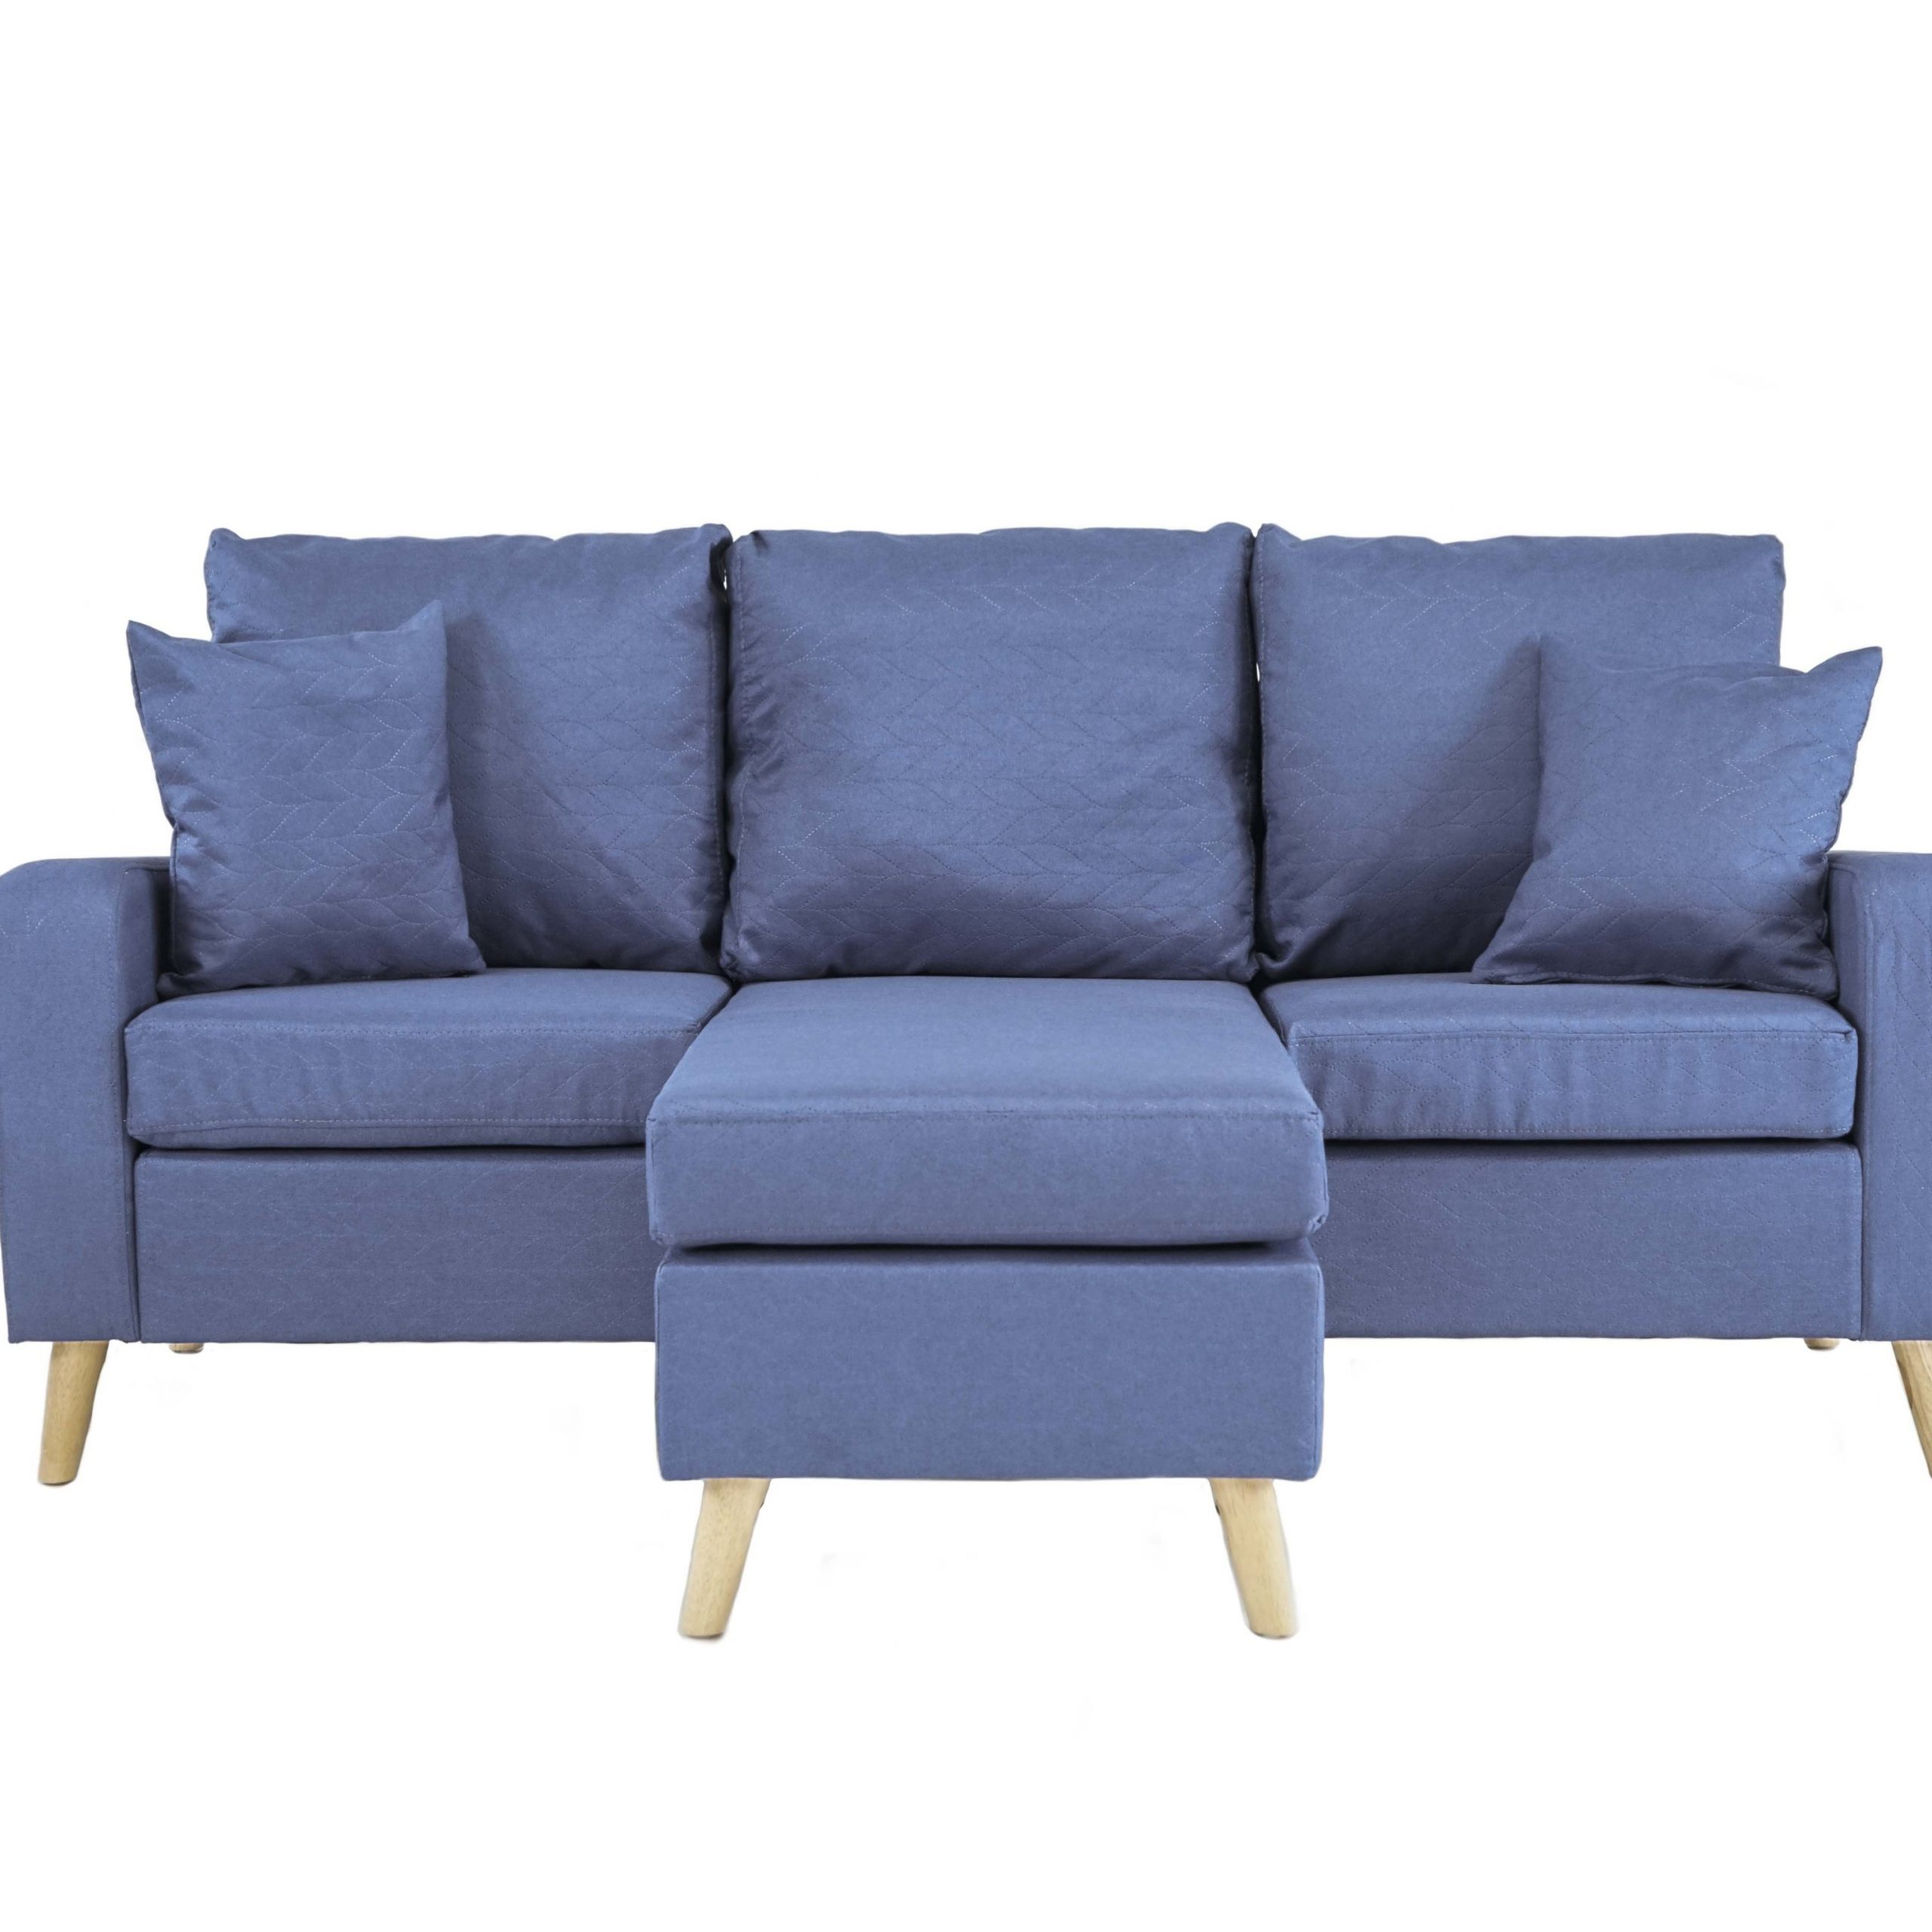 Dulce Mid Century Chaise Sofas Dark Blue Pertaining To Recent Light Blue Small Space Furniture Sectional Sofa With (View 7 of 20)